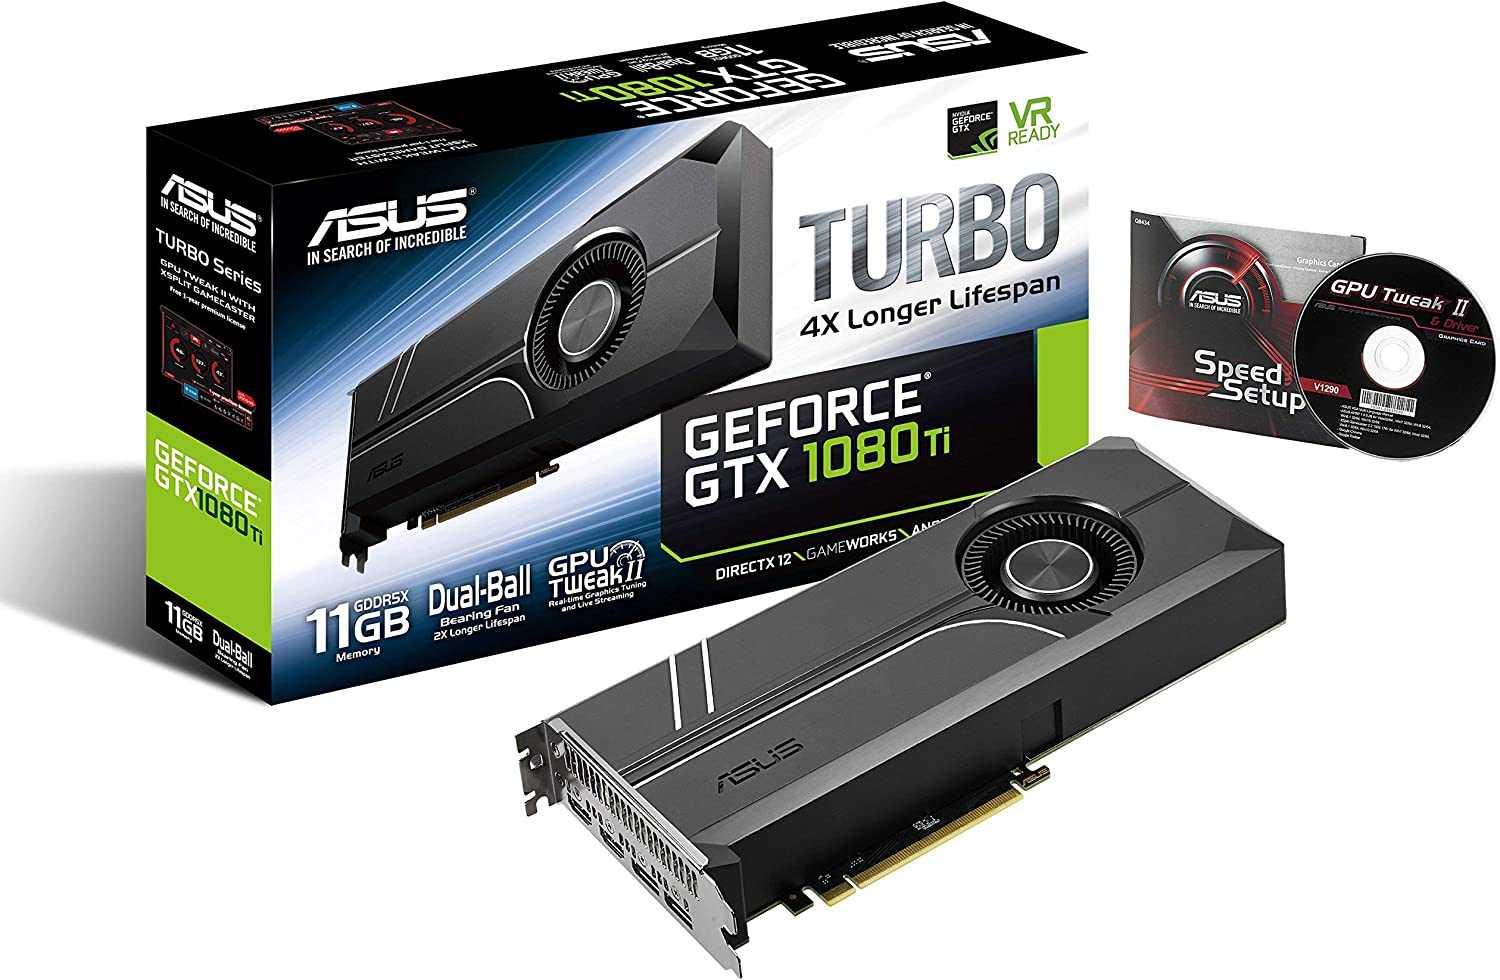 ASUS GeForce GTX 1080 TI 11GB Turbo Edition VR Ready 5K HD Gaming HDMI DisplayPort PC GDDR5X Graphics Card TURBO-GTX1080TI-11G (Renewed)